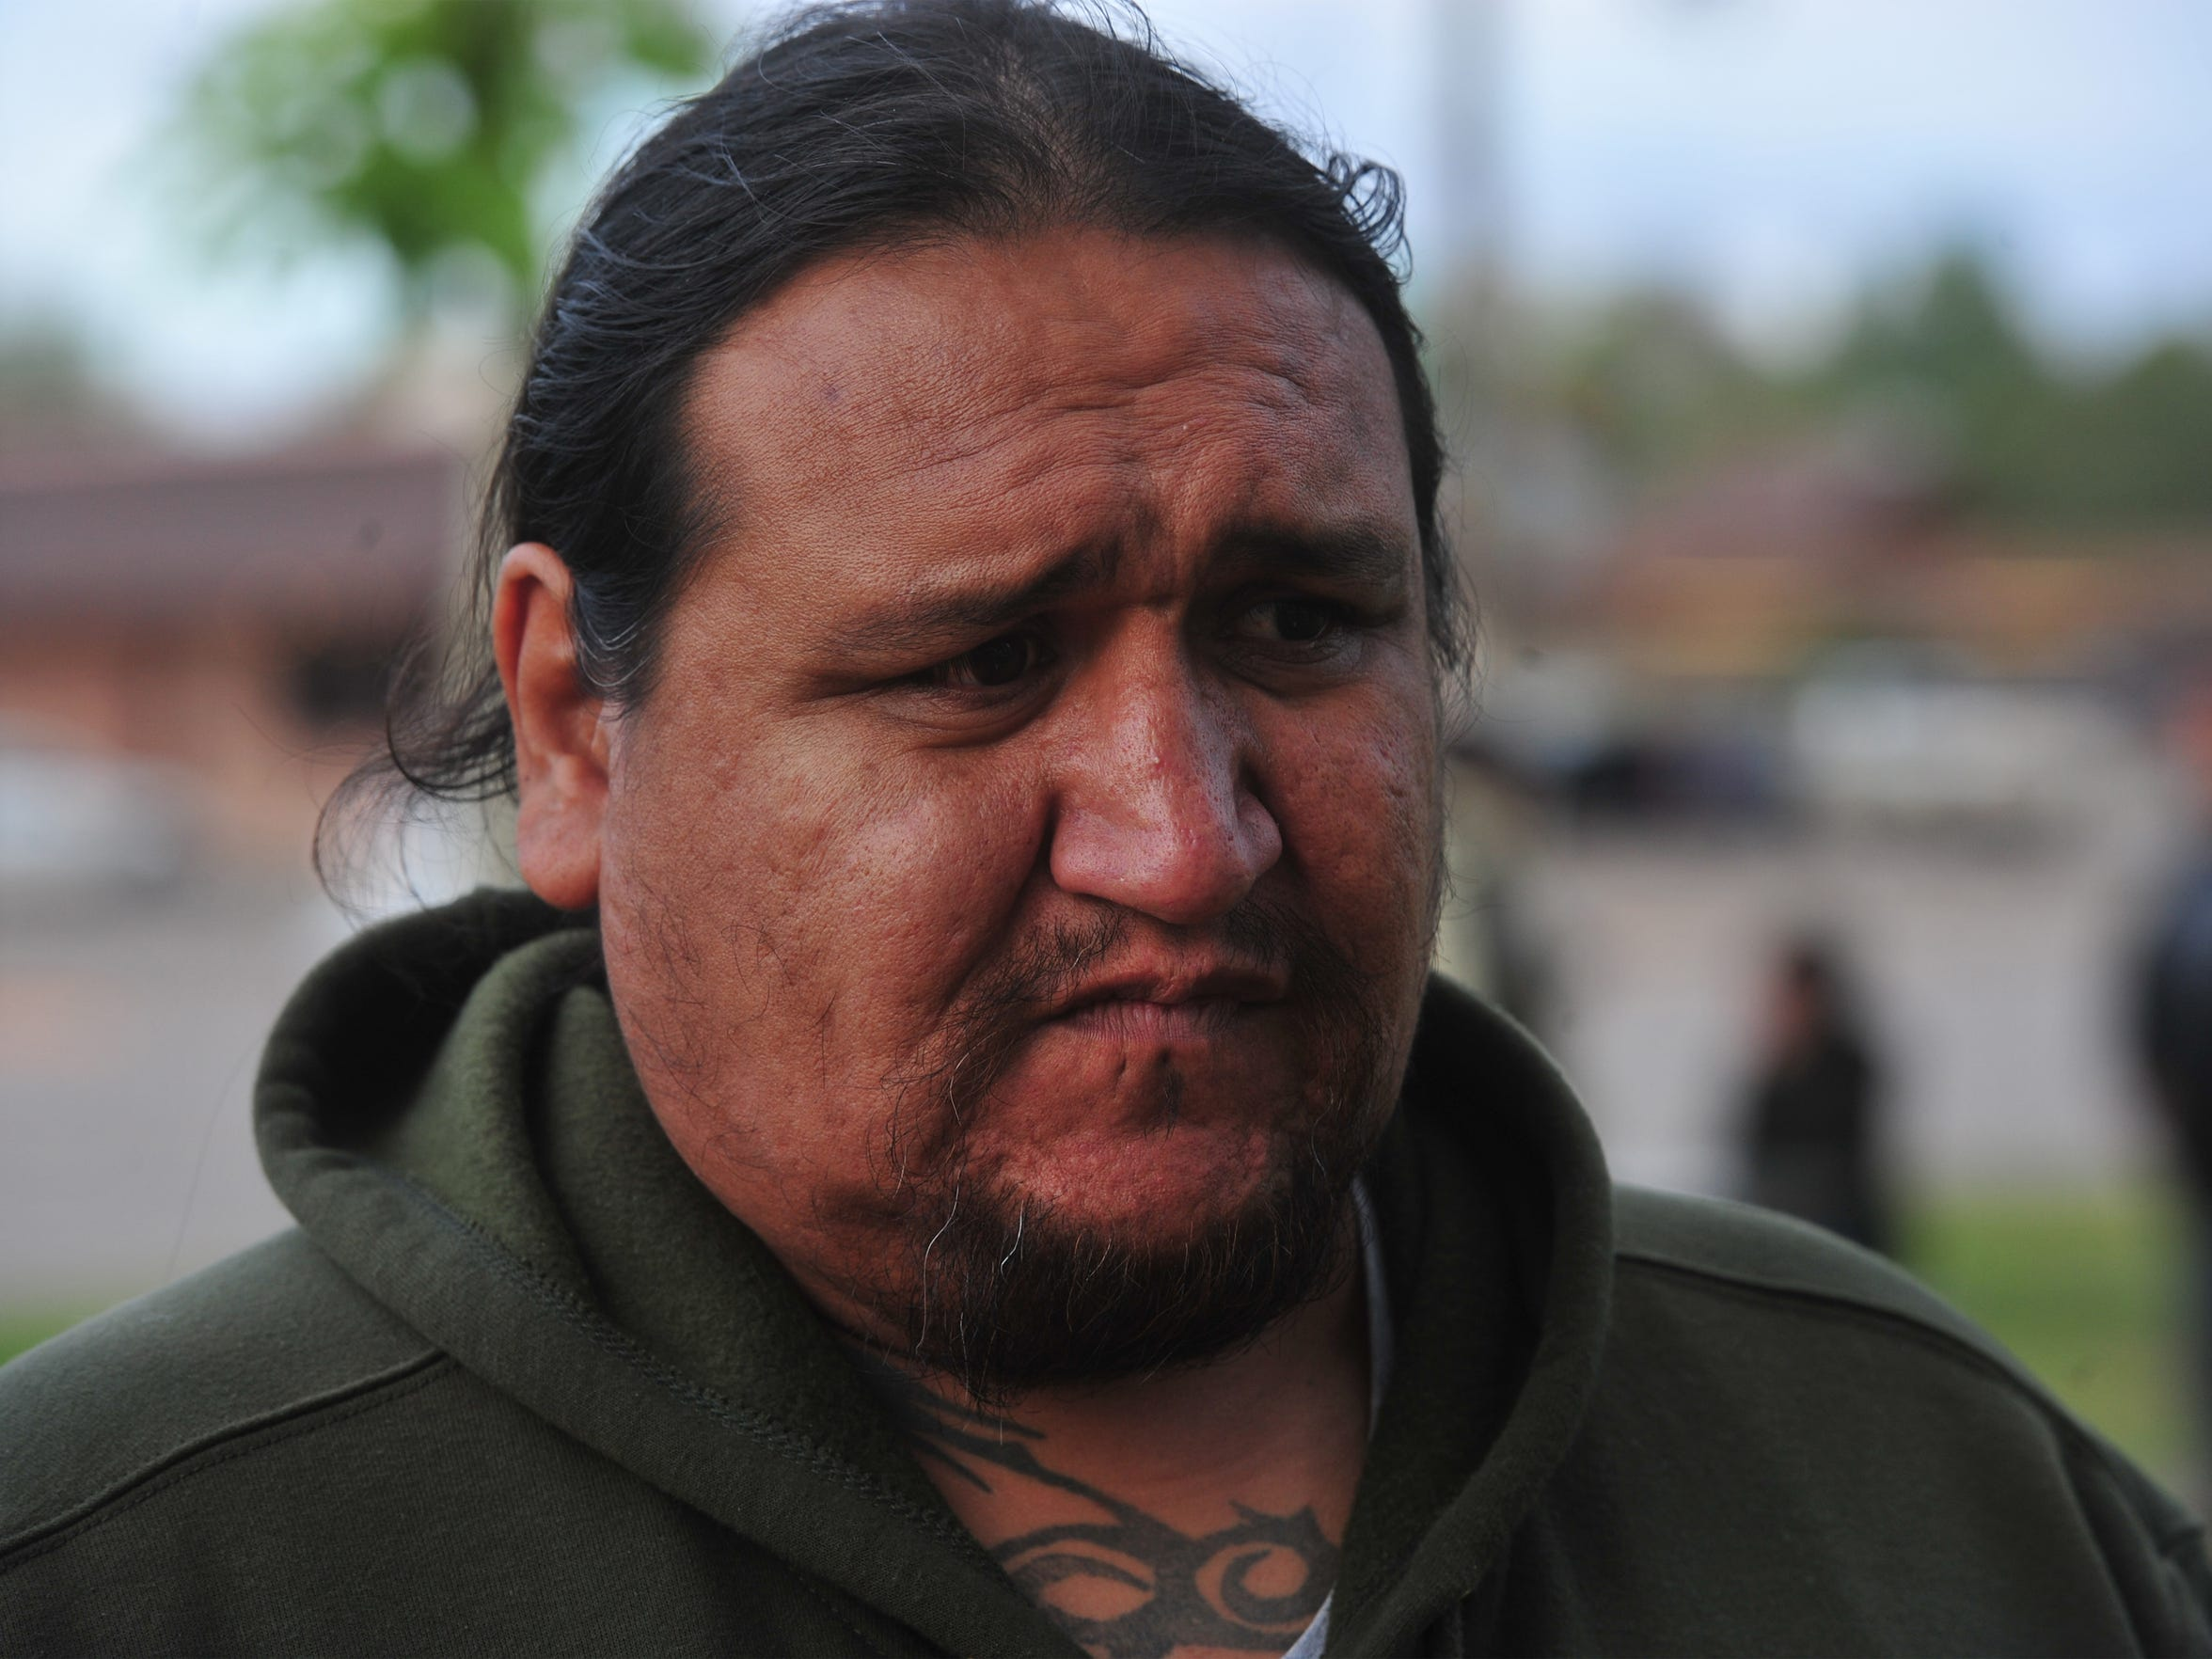 """Scoby Baker was one of the people who was picked up in the 2013 """"wino-roundup"""" in Wolf Point.  Baker says he hadn't had any alcohol and had only just arrived in Wolf Point when tribal police apprehended his party, detaining them in the tribal jail until the next day."""